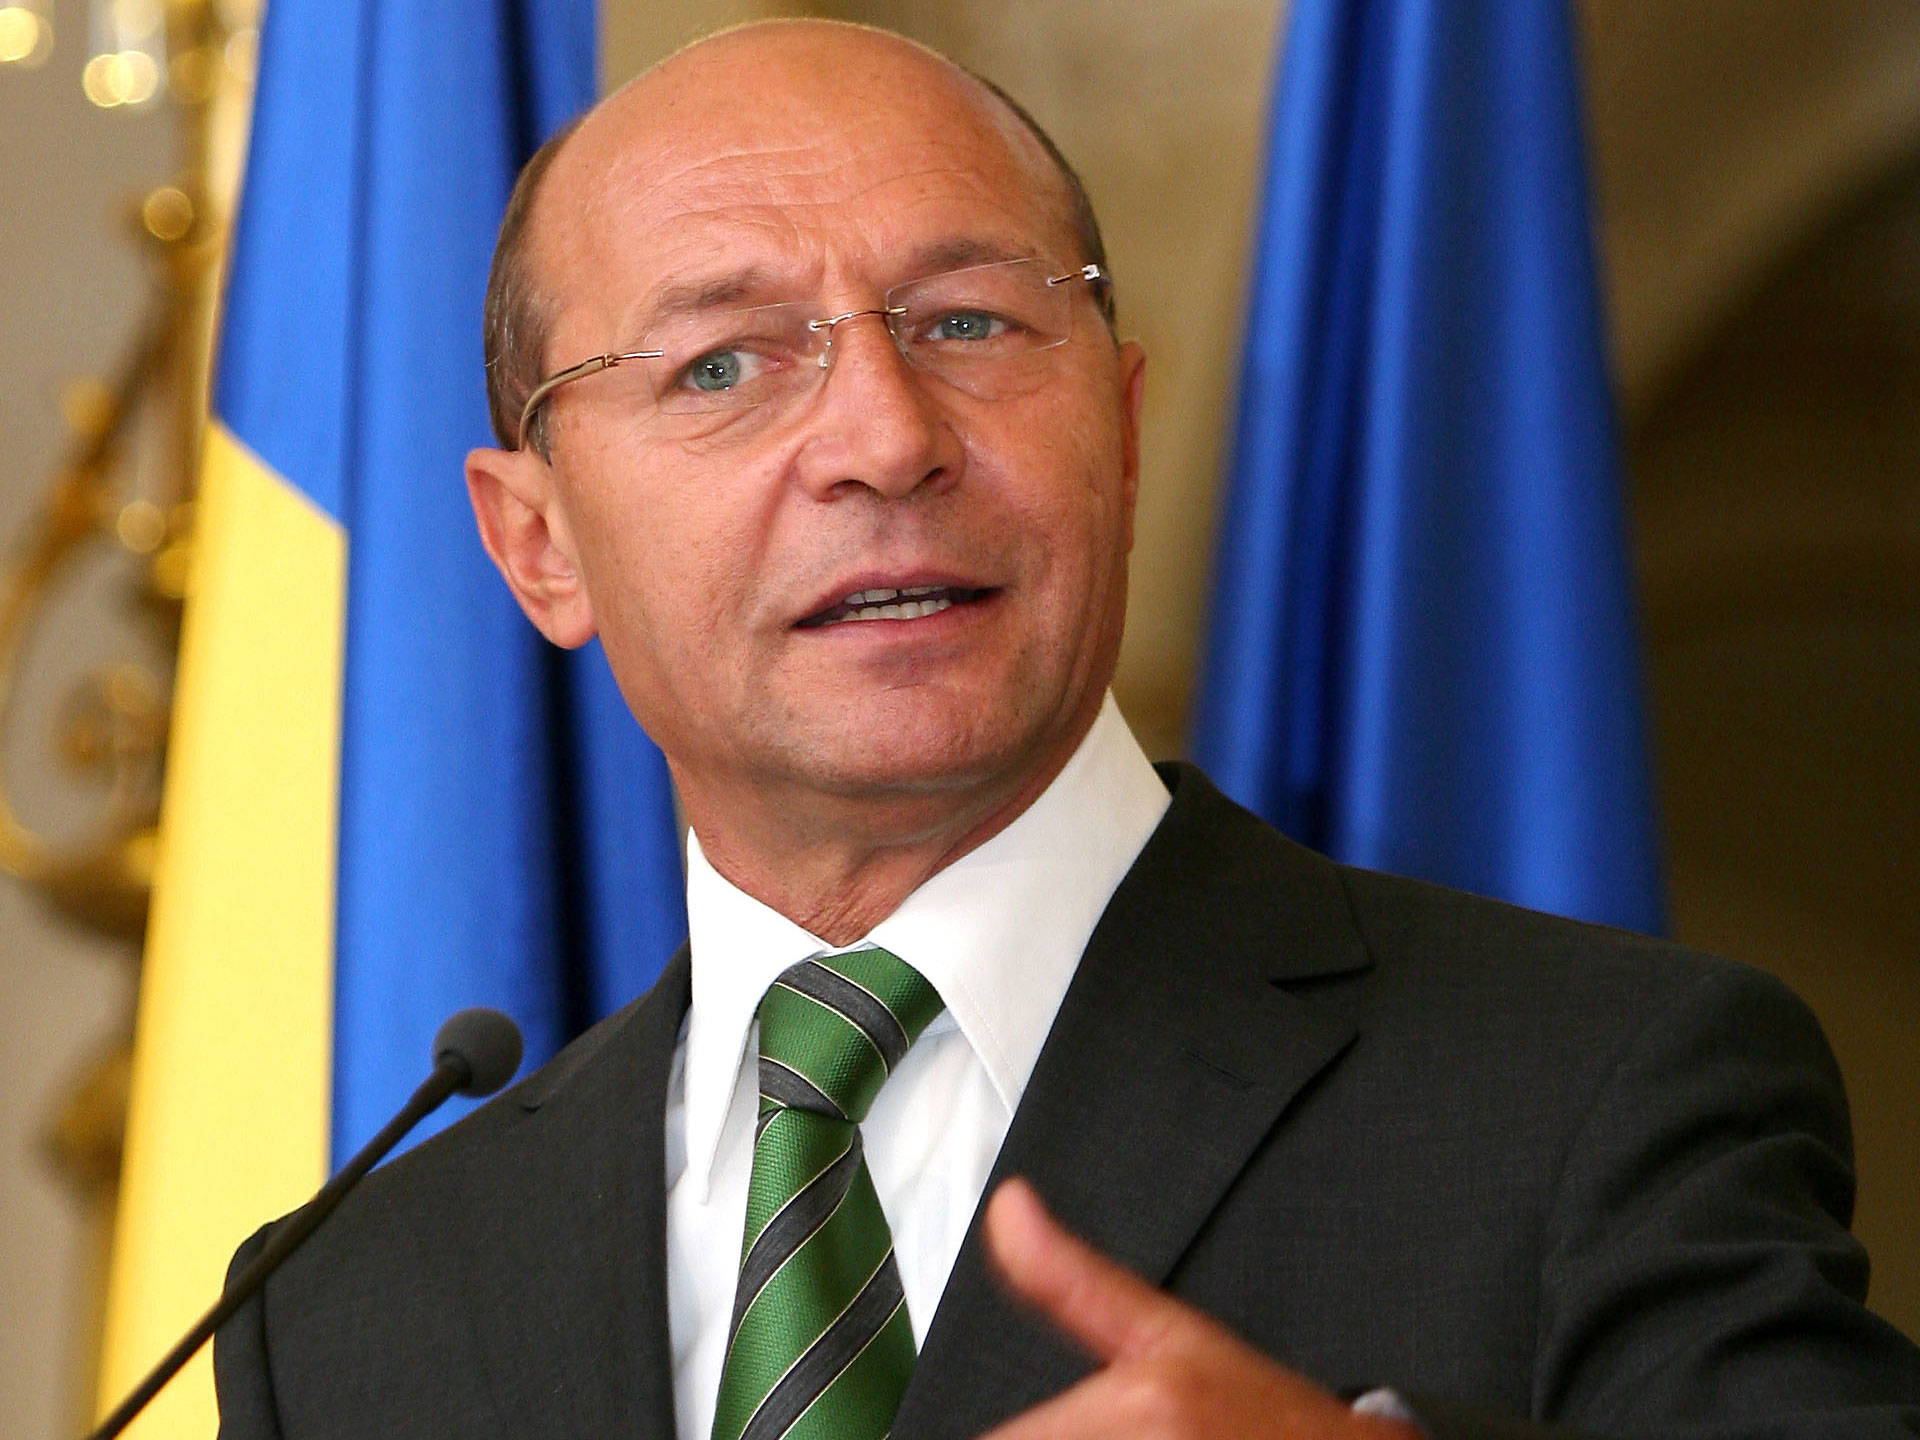 Basescu: 2009 referendum should be starting point of amending the Constitution